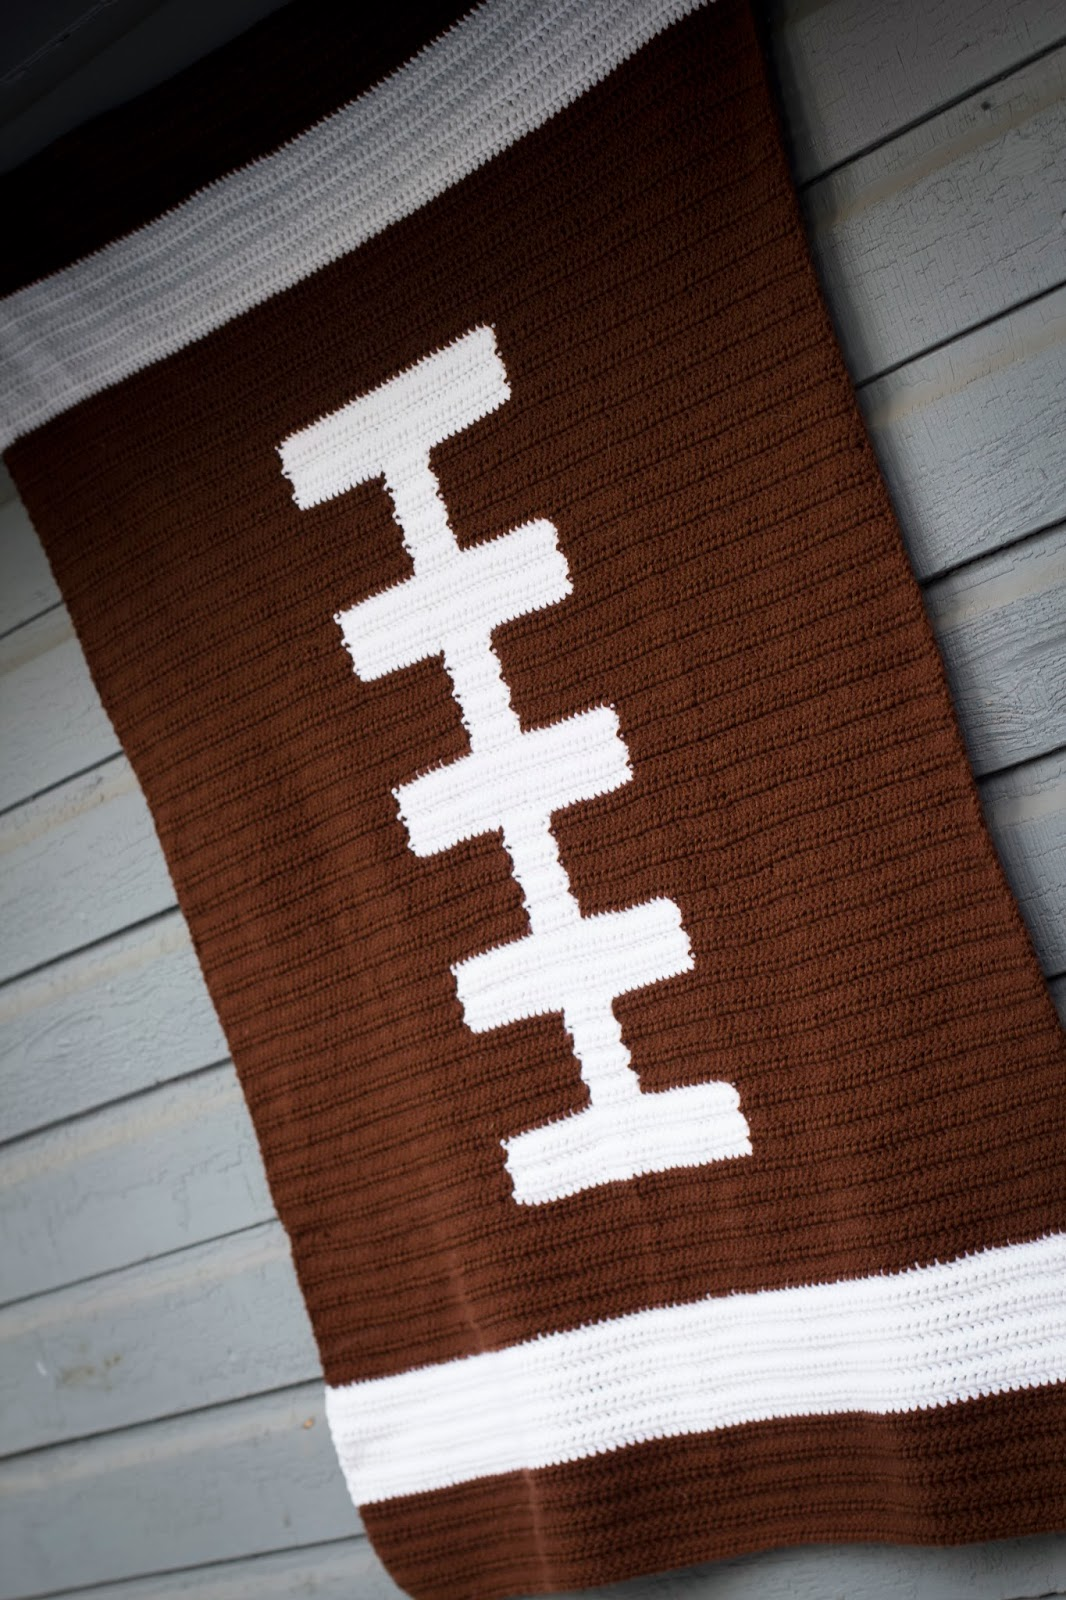 Crochet Pattern For Football Blanket : Football Blanket Crochet Chart